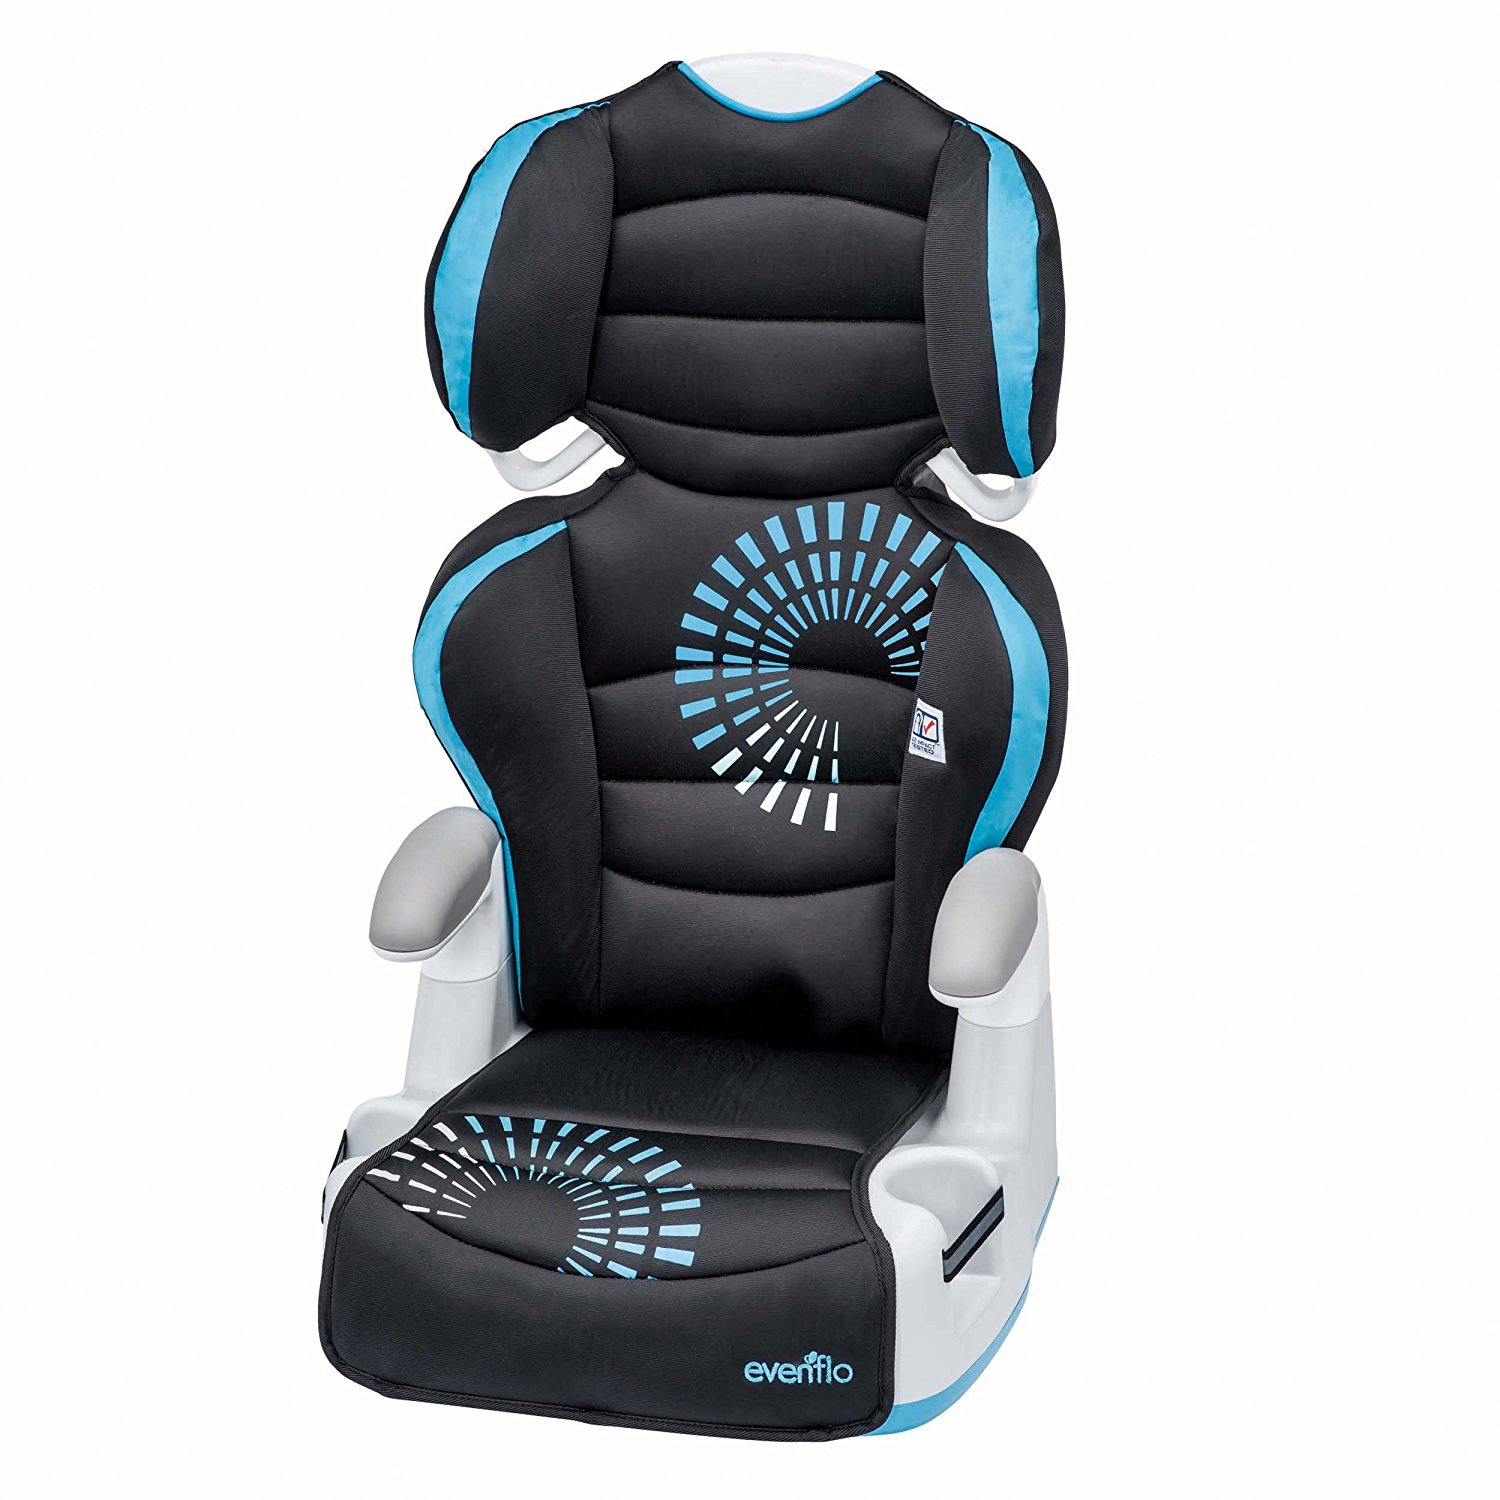 evenflo big kid AMP booster car seat, high back booster seat, best high back booster seat, child safety seat, booster seat for cars, best booster seat for cars